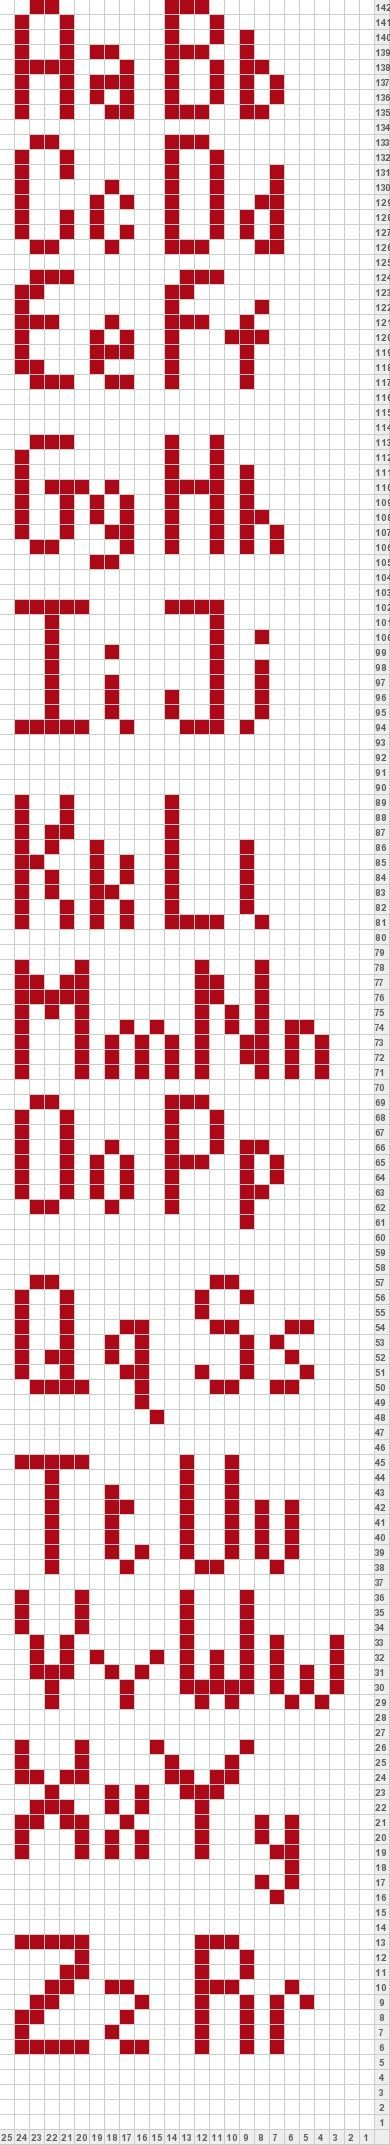 Alphabet for Knitting My Favorite Things Scarf thing ...